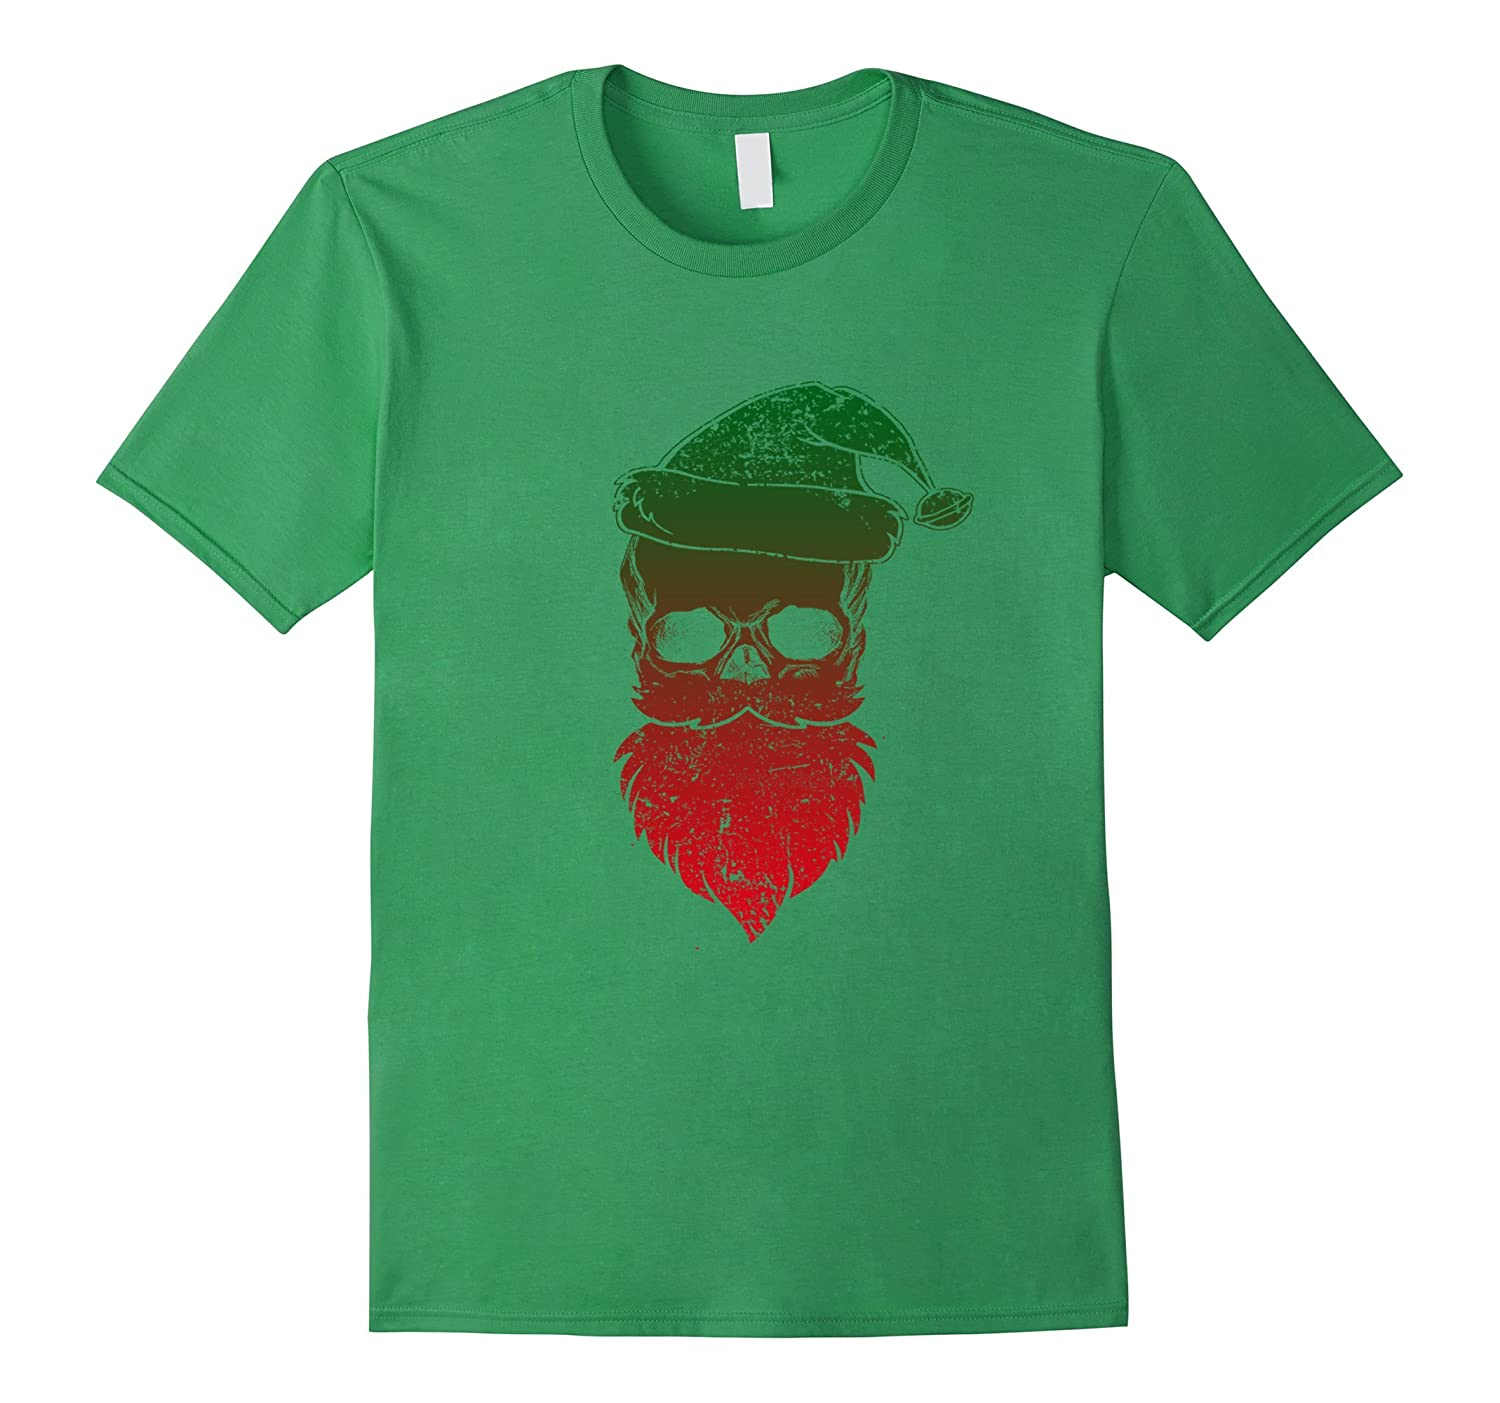 Funny Santa is Bad T-shirt Christmas Jumper Tee Meme Gift-FL